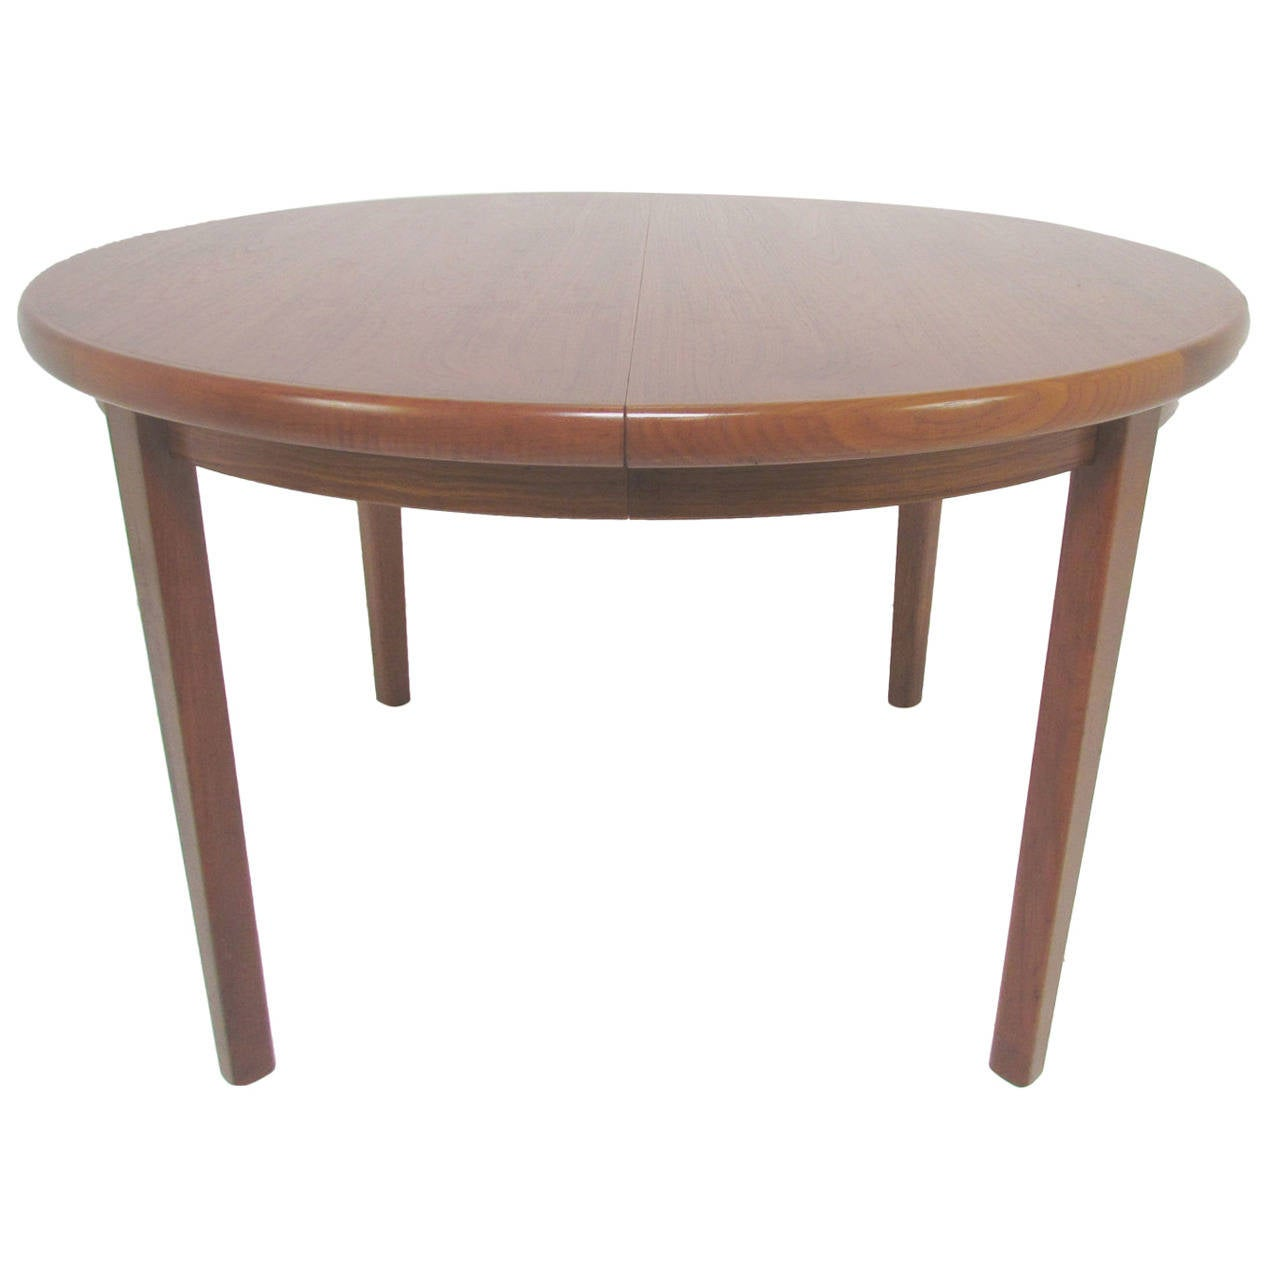 Image Result For Expanding Round Dining Room Tablea